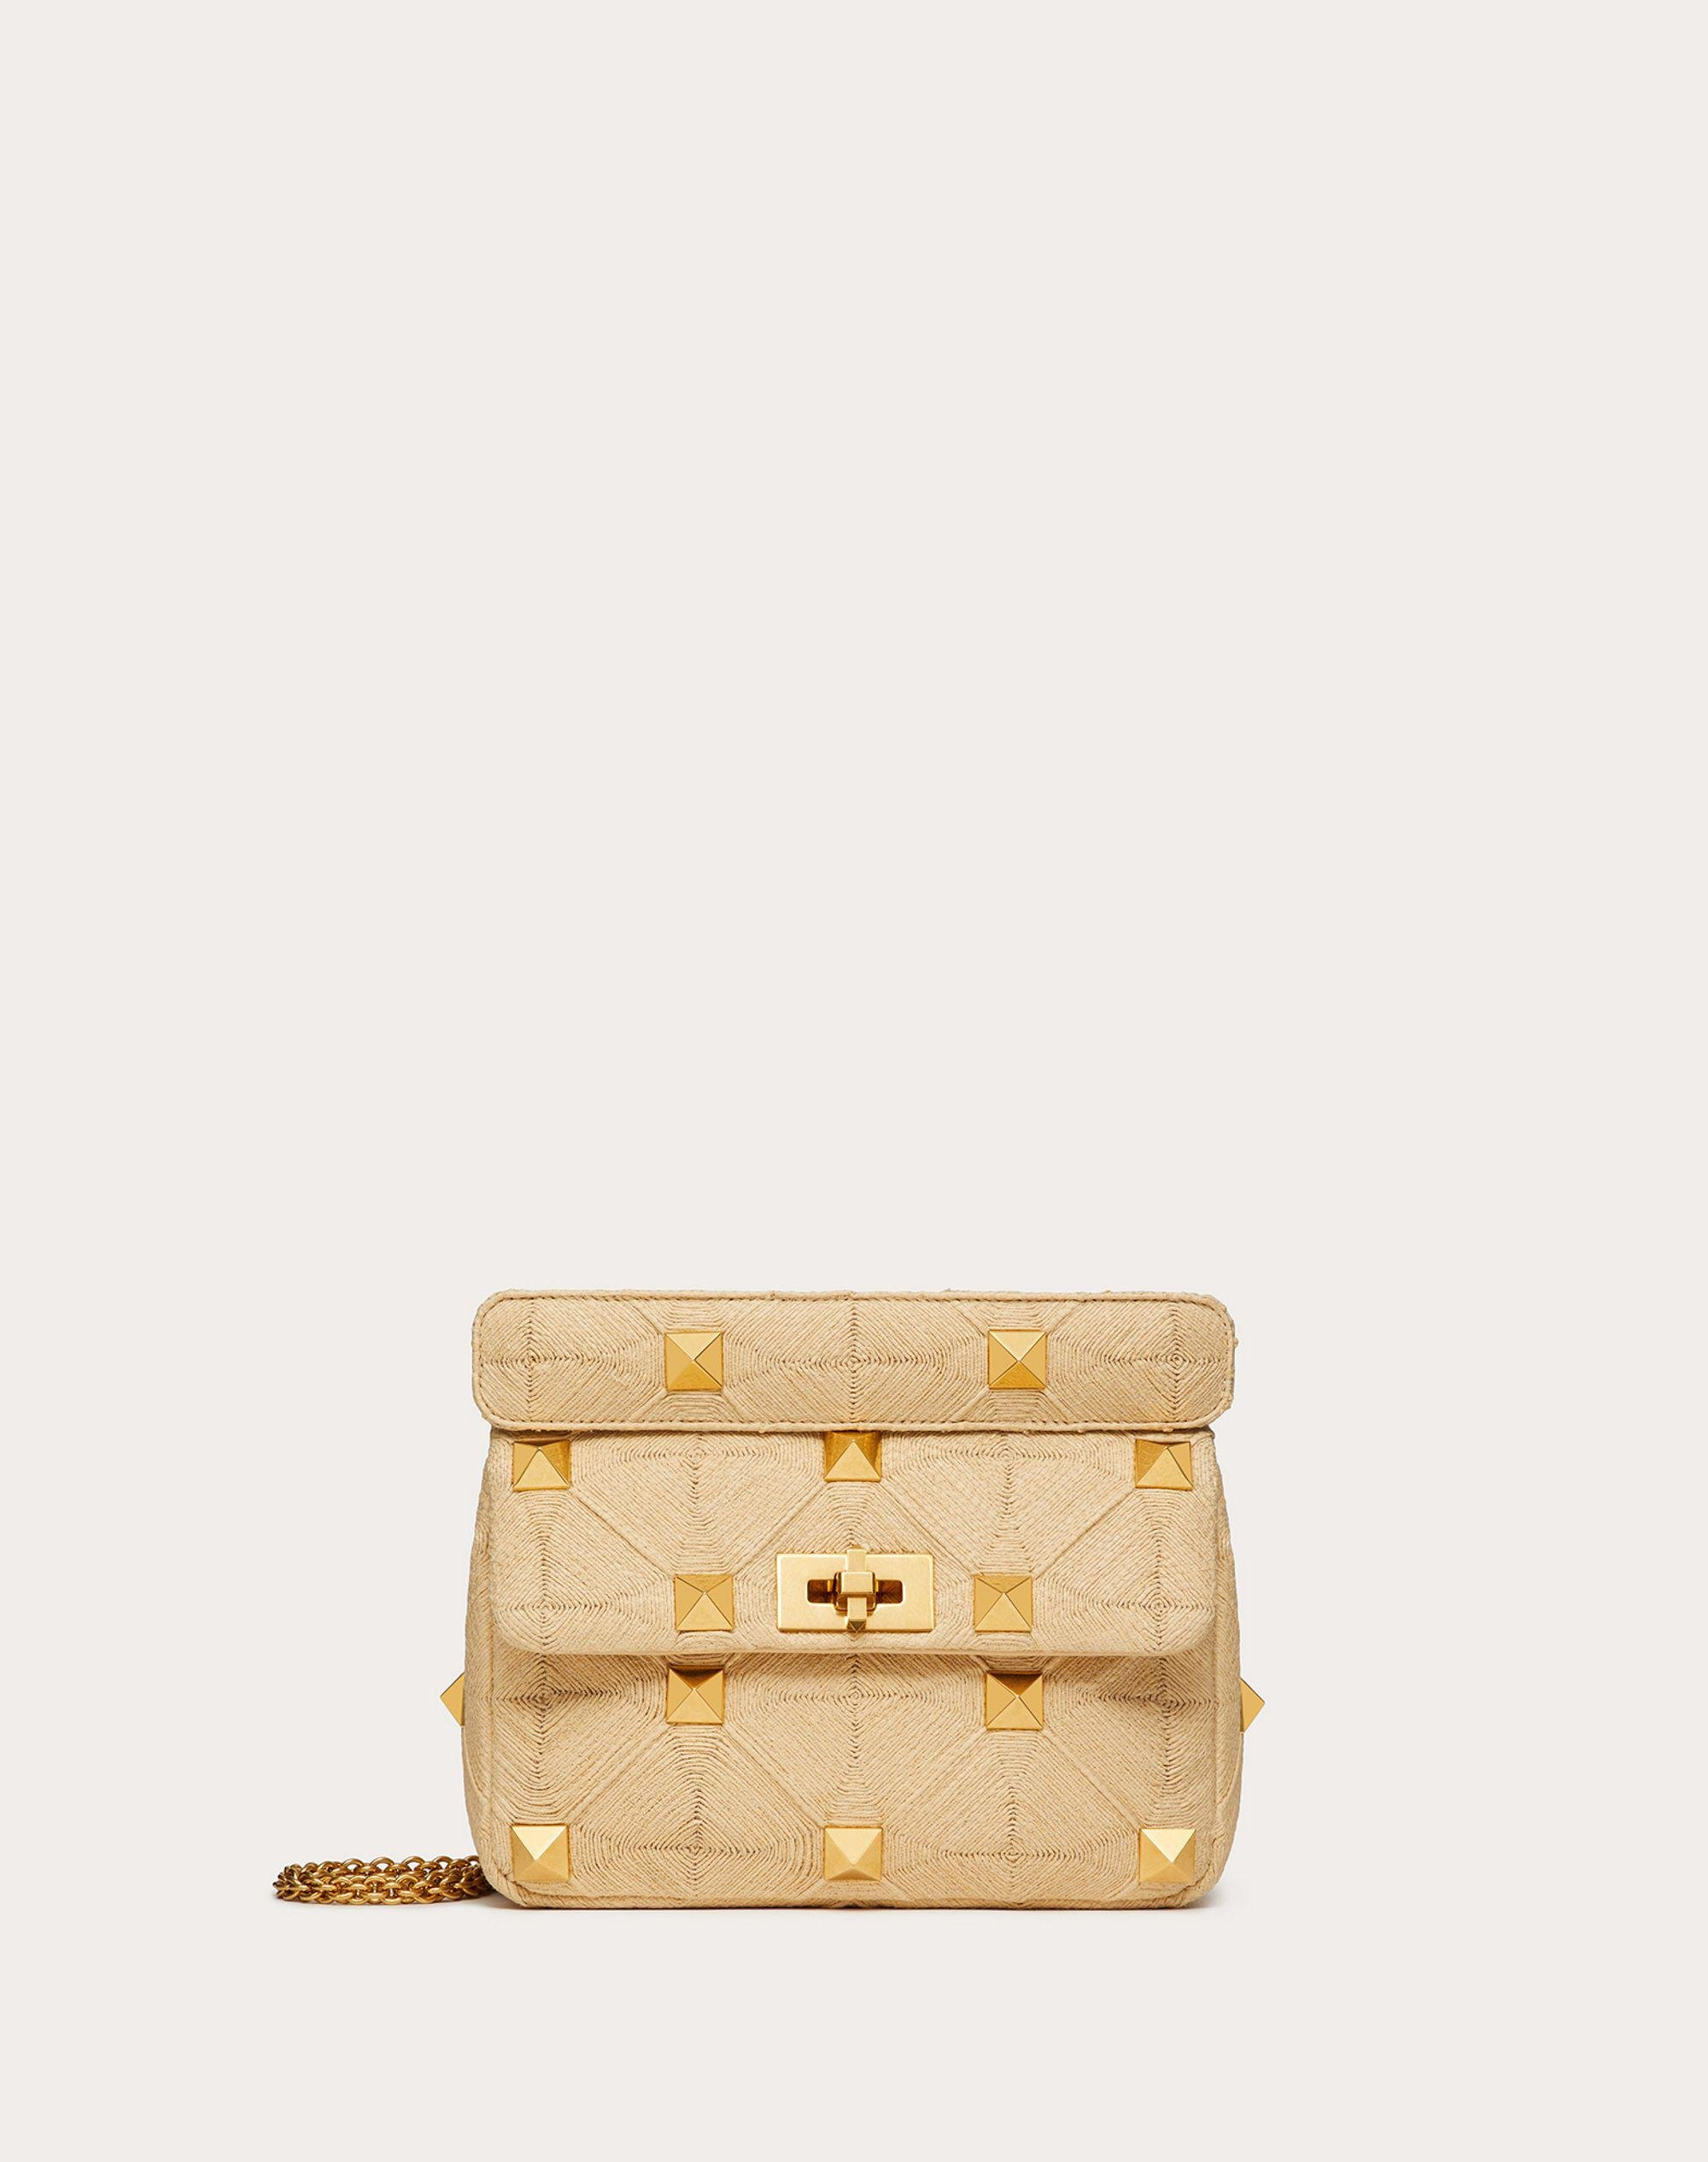 Medium Roman Stud The Shoulder Bag in Synthetic Raffia with Chain